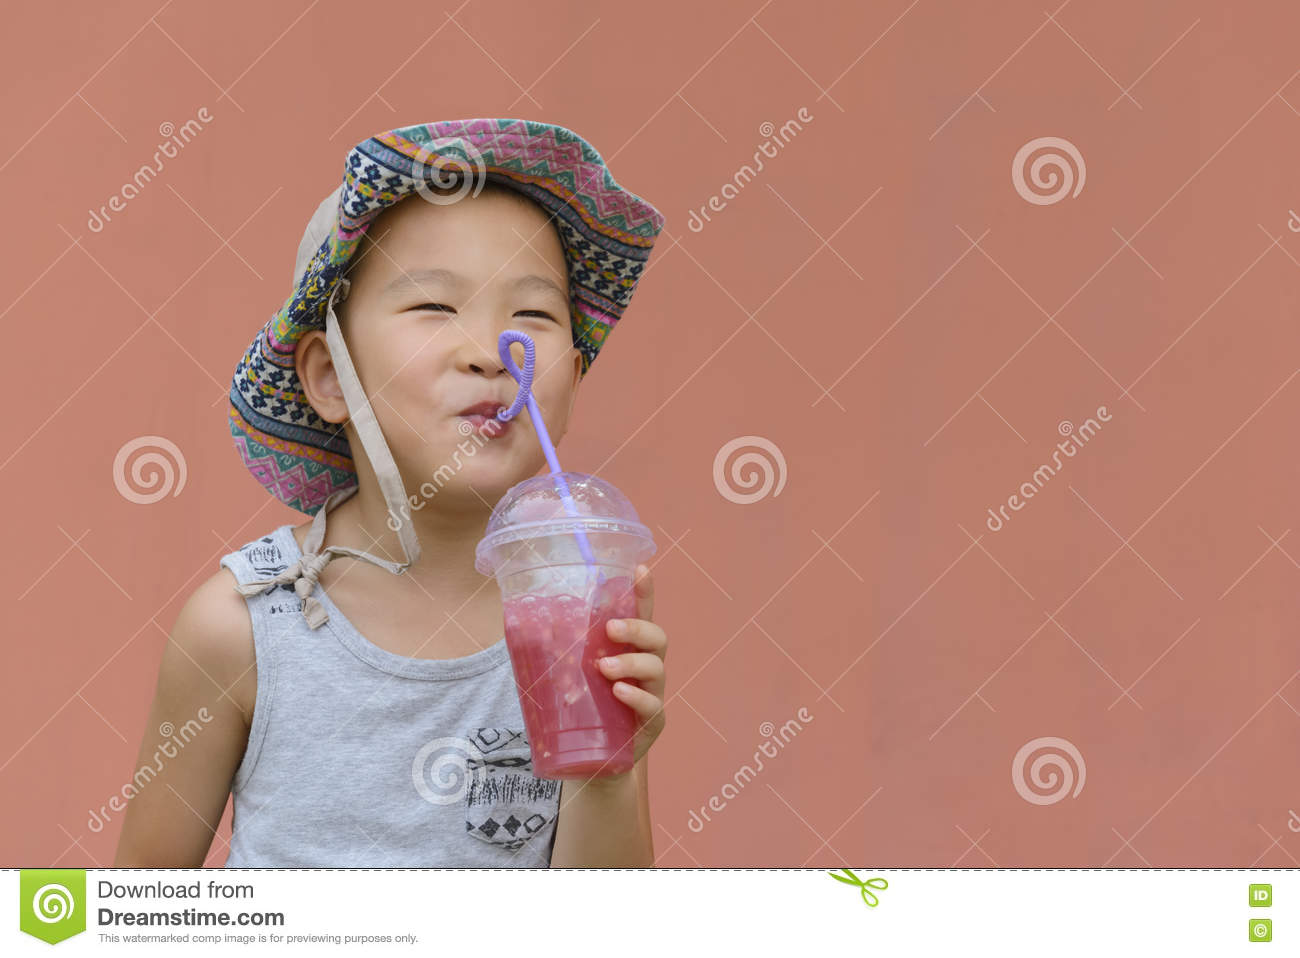 Kid drinking cold drink